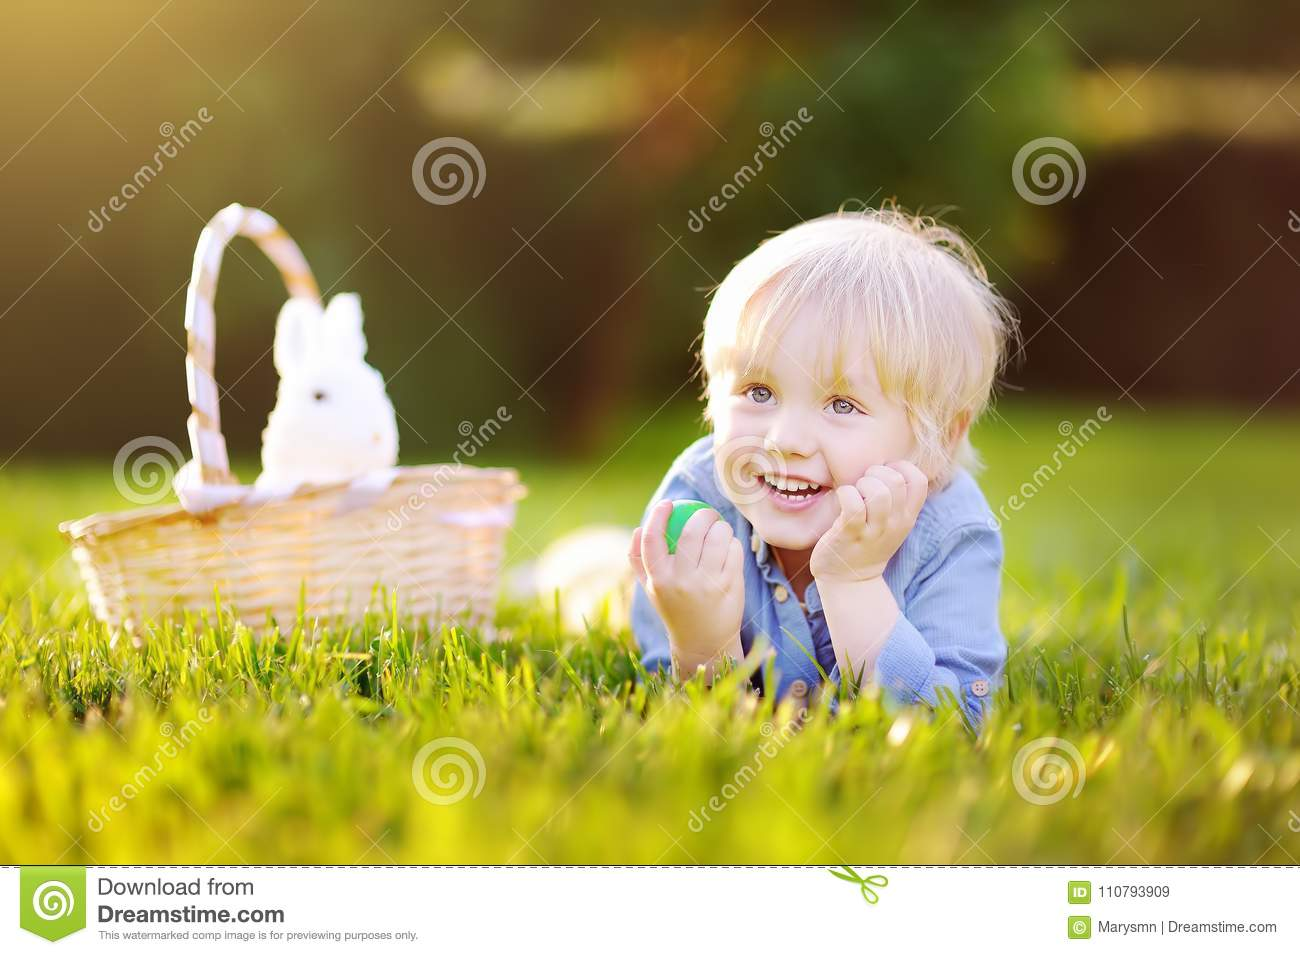 Charming little boy hunting for easter egg in spring park on Easter day